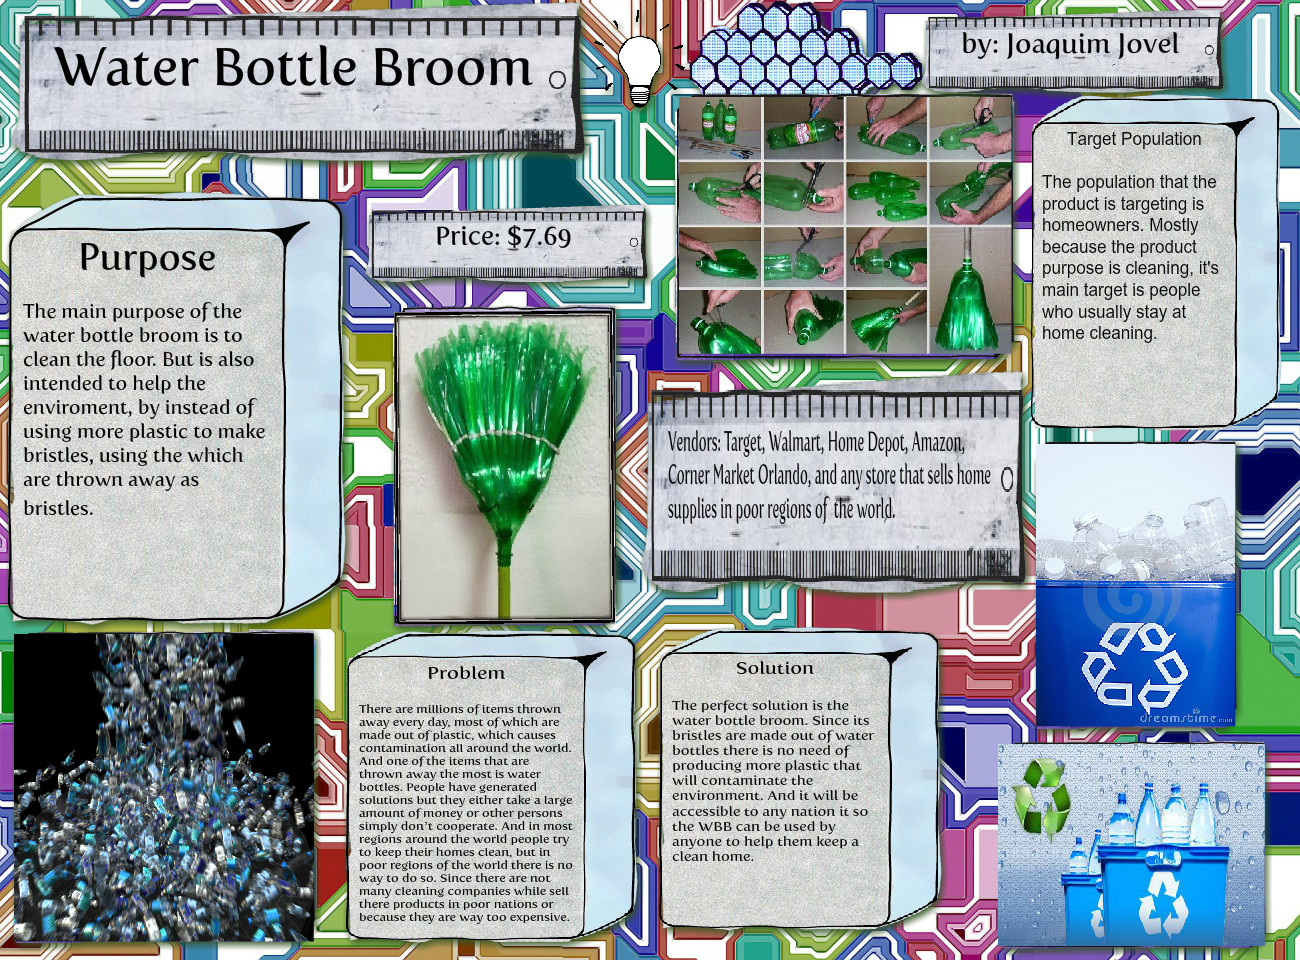 Water bottle broom